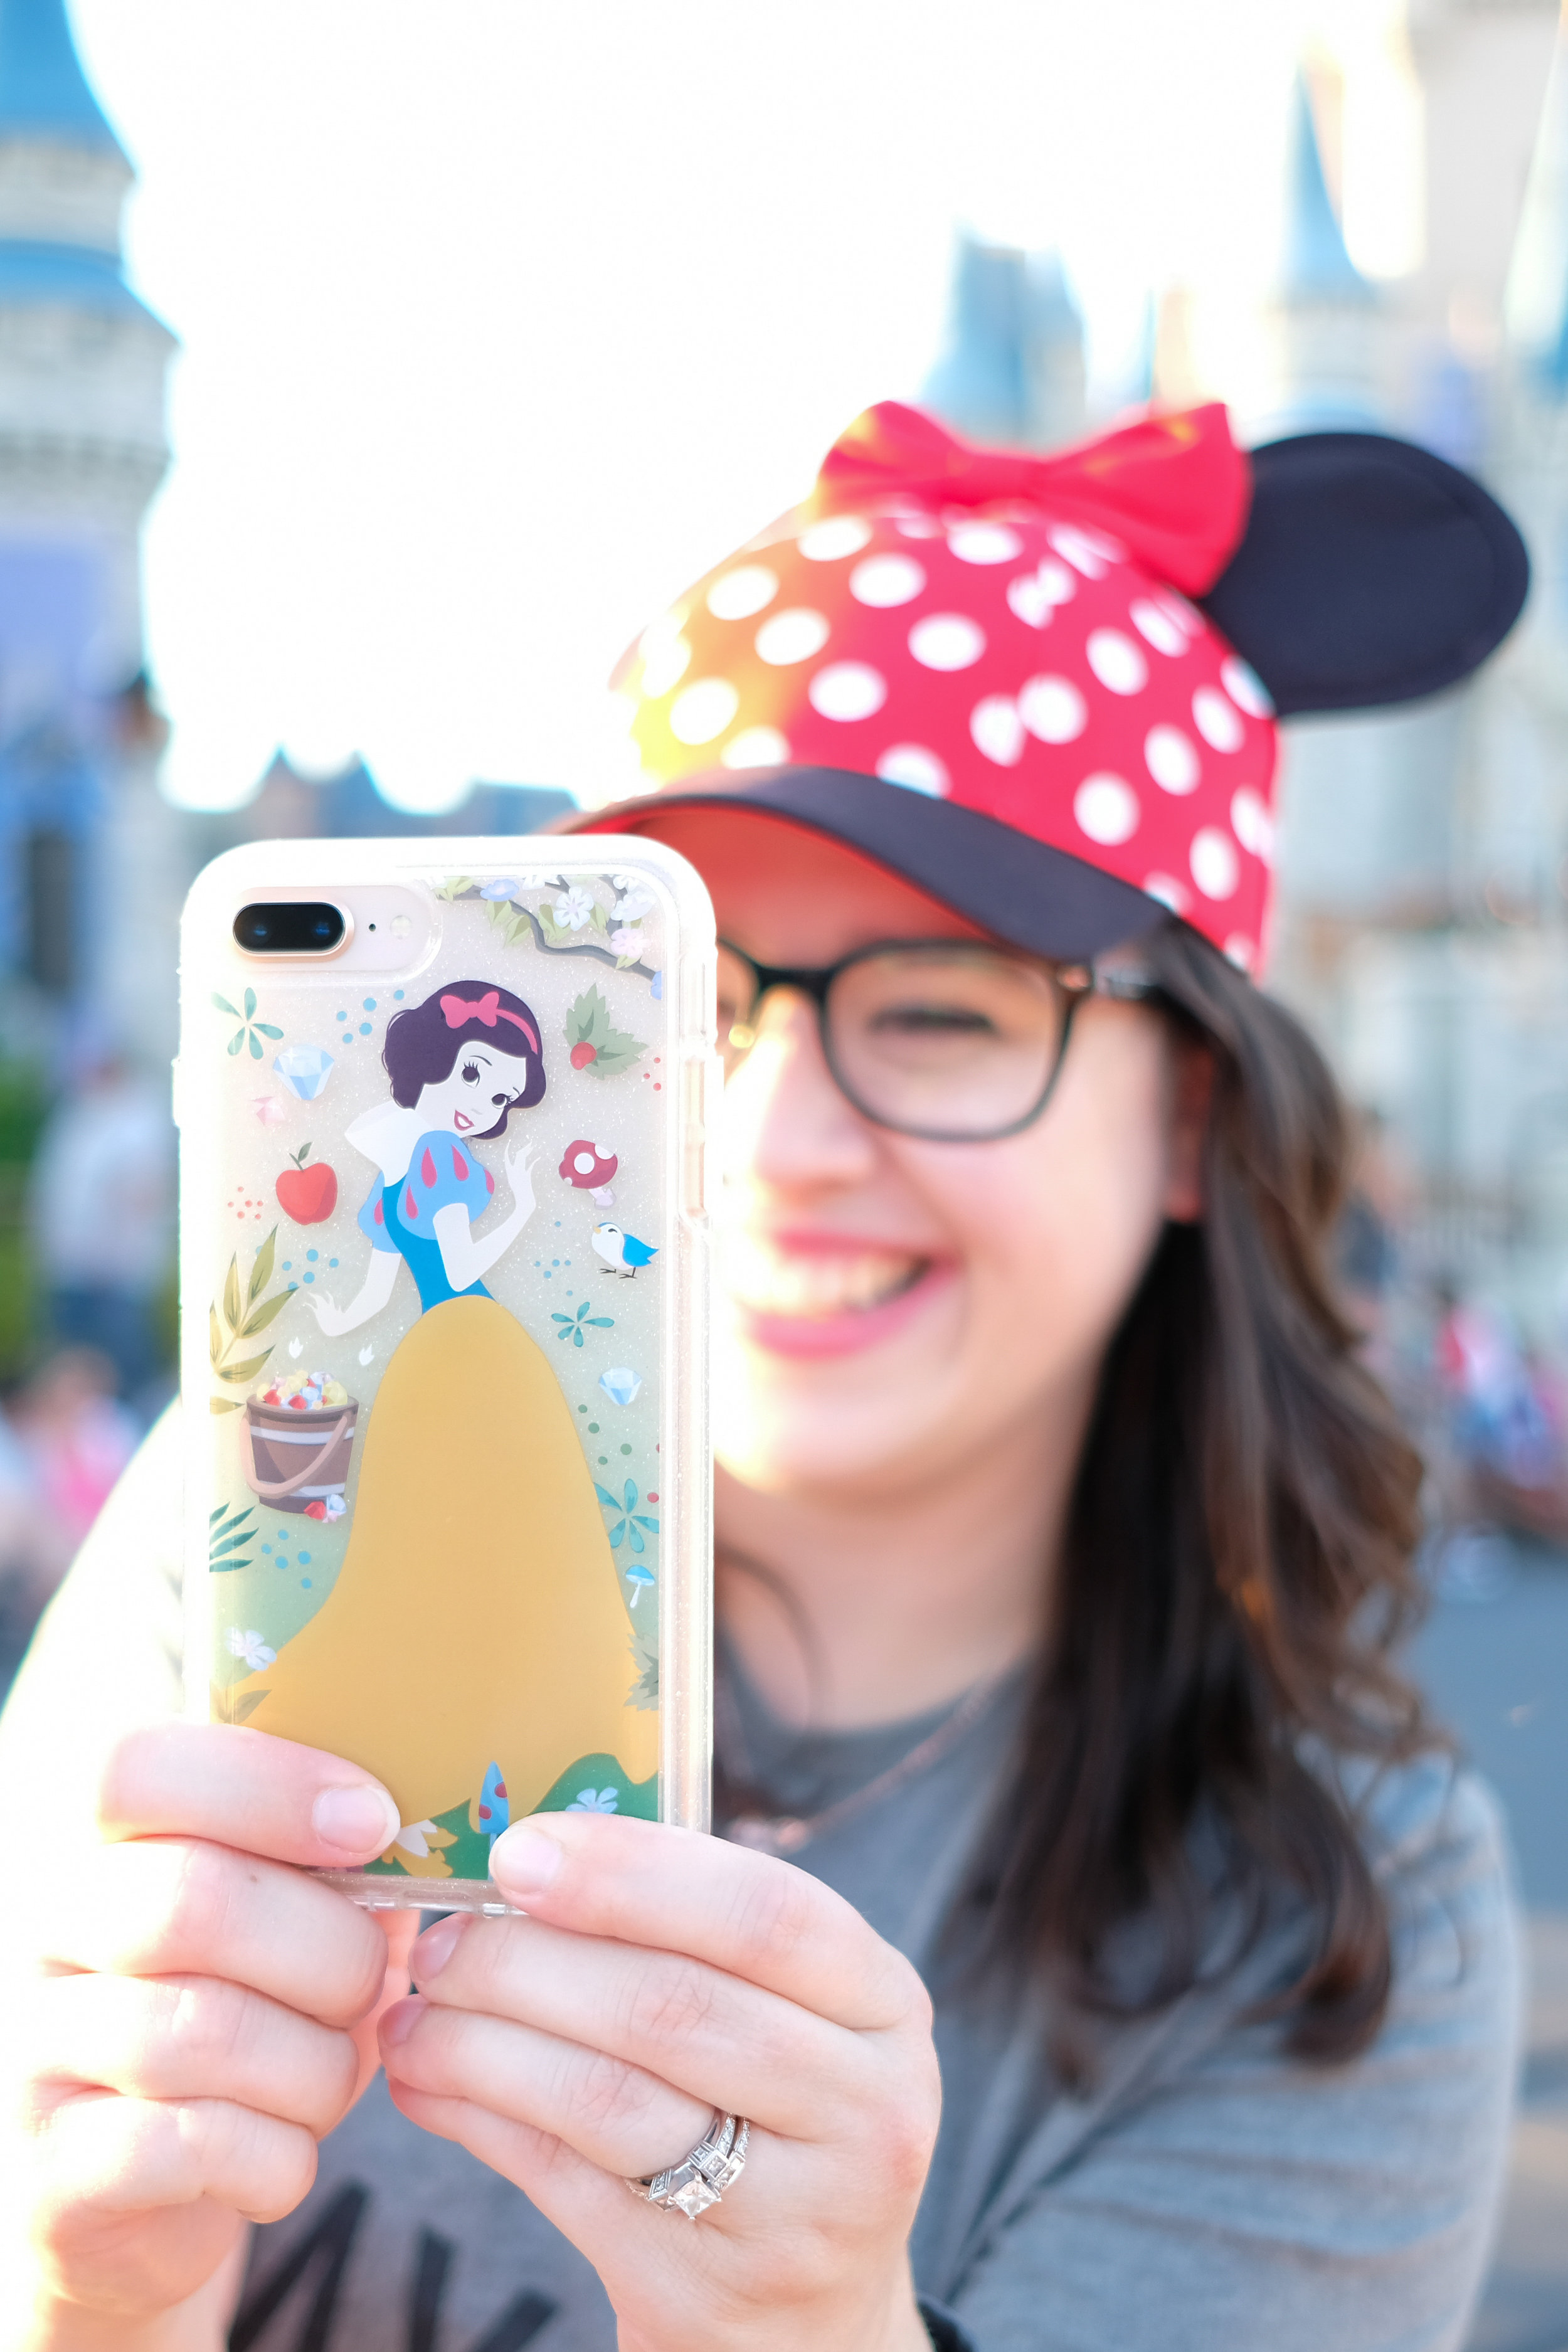 Phone Cases that Show Your Disney Side